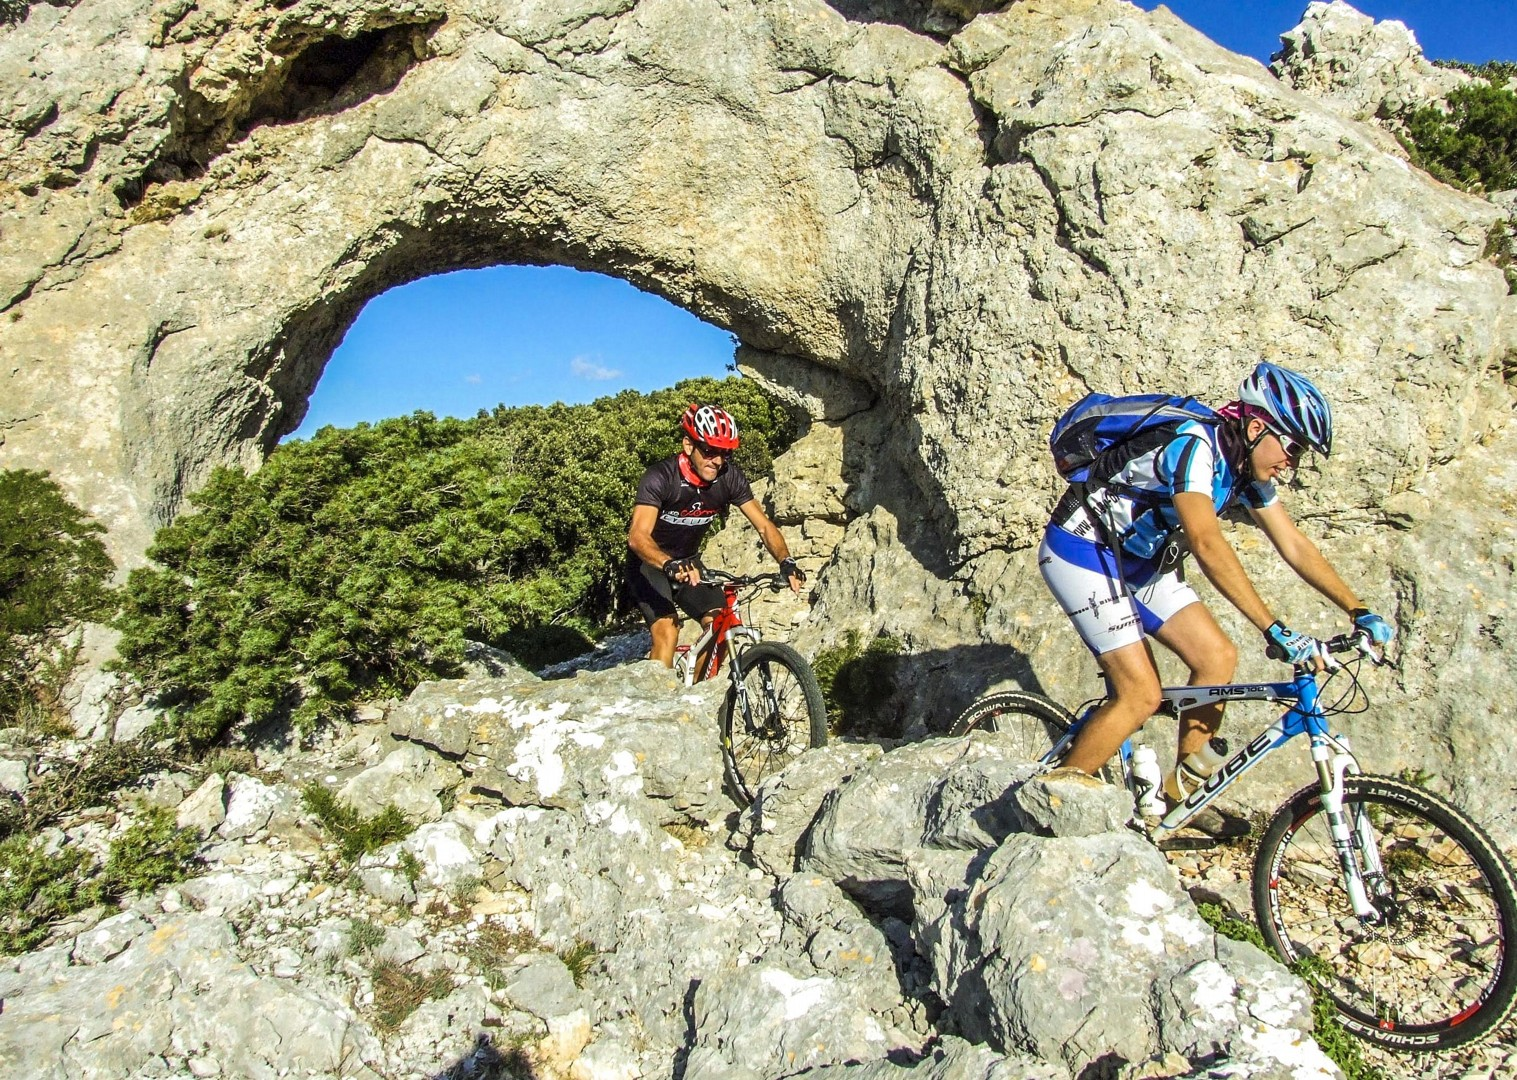 mountain-biking-tour-thrilling-remote-mountain-ranges-incredible.jpg - Italy - Sardinia - Coast to Coast - Self-Guided Mountain Bike Holiday - Mountain Biking